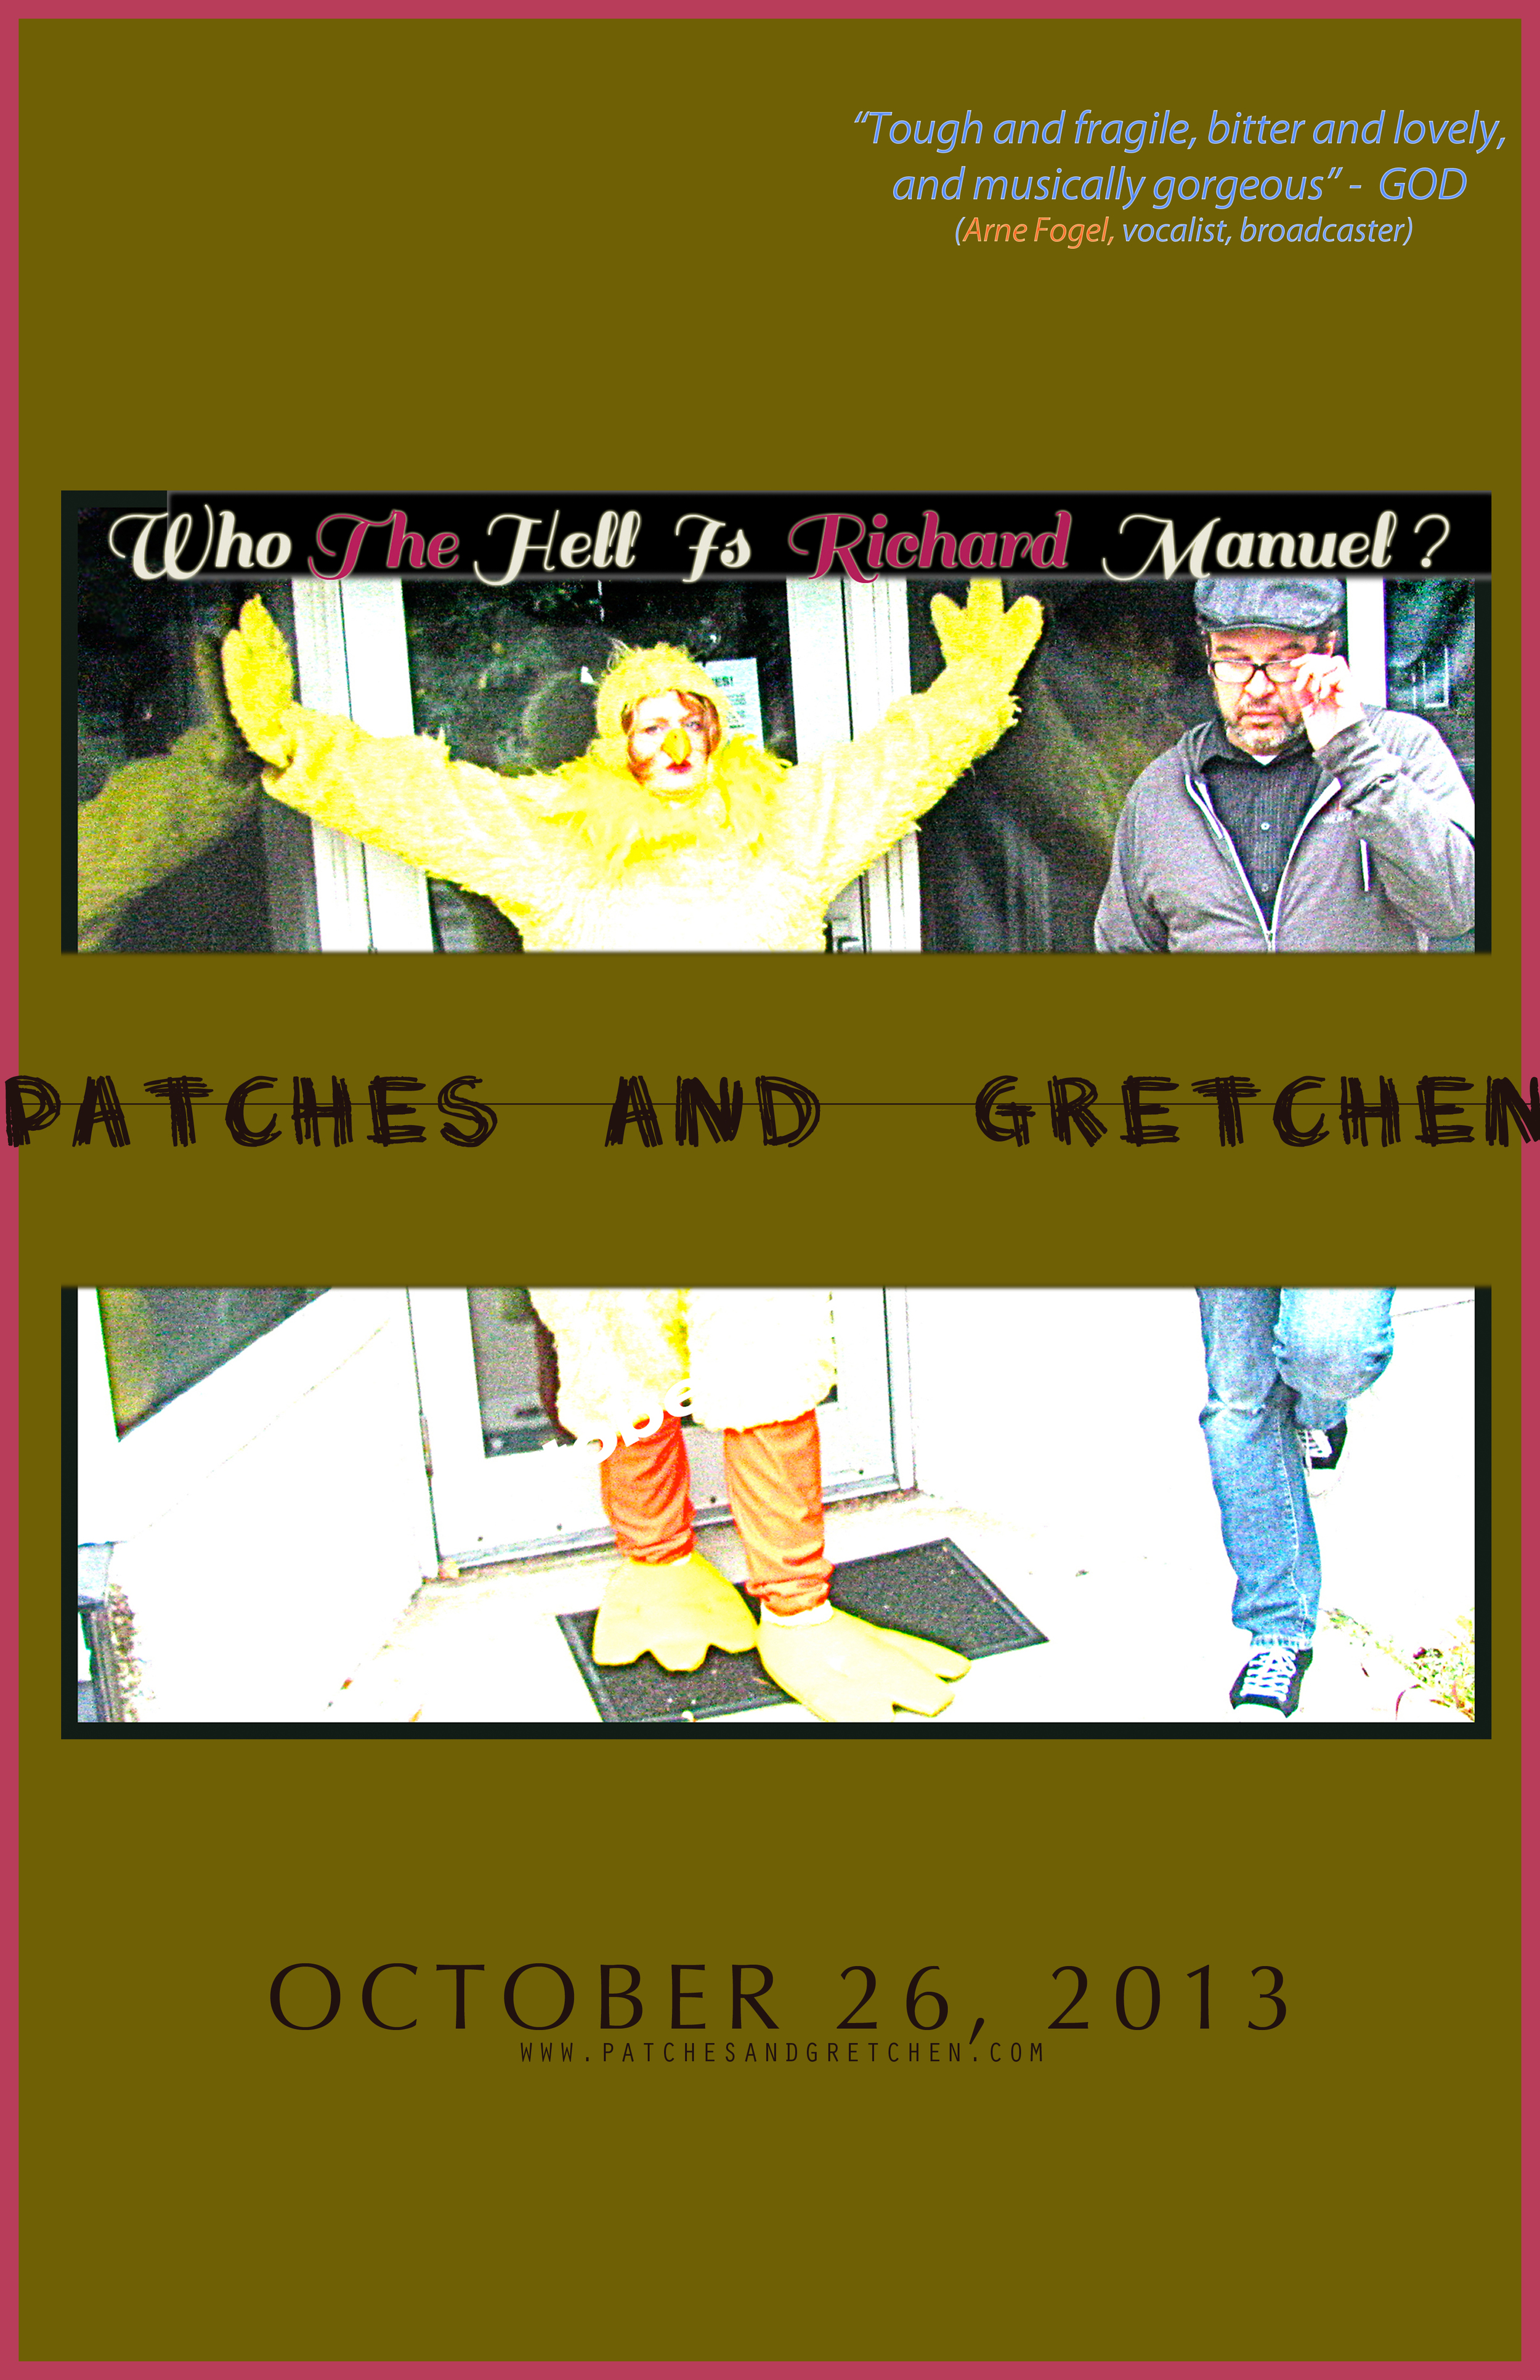 Who The Hell Is Richard Manuel? PATCHES AND GRETCHEN OCTOBER 26, 2013 Poster by Gretchen Seichrist / Photo by Marc Percansky